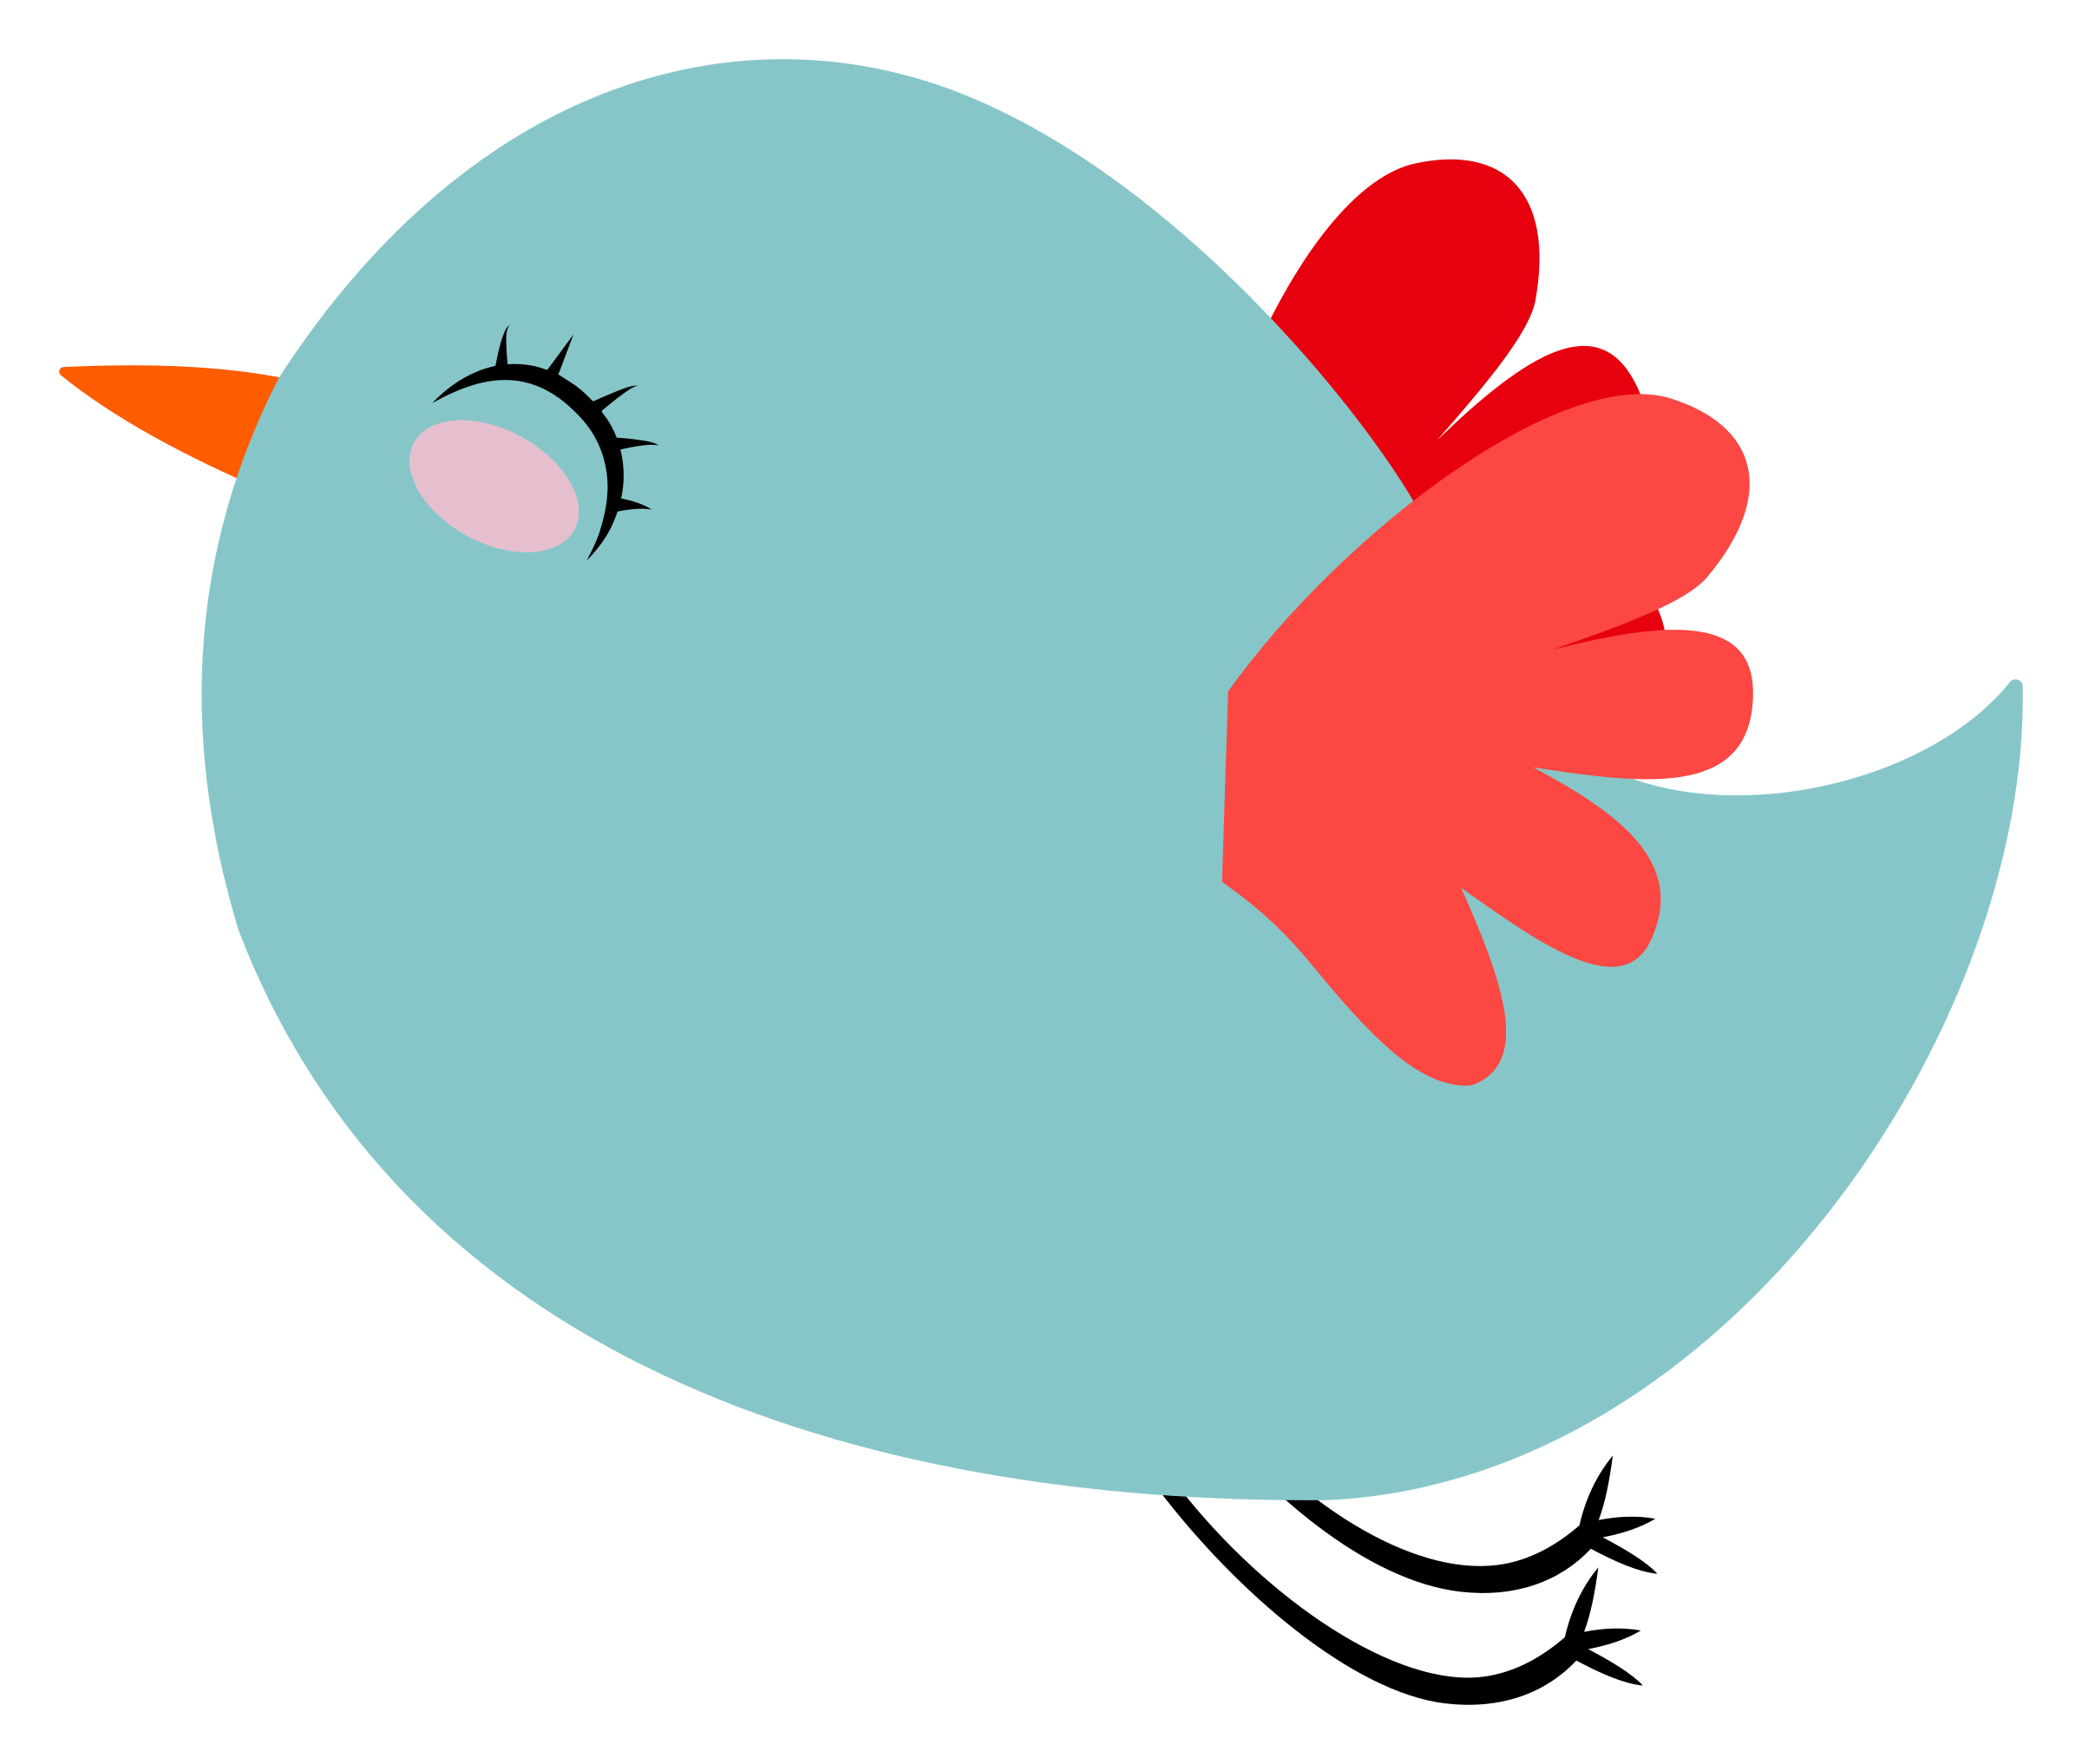 Schedule clipart cute. Teal bird with red